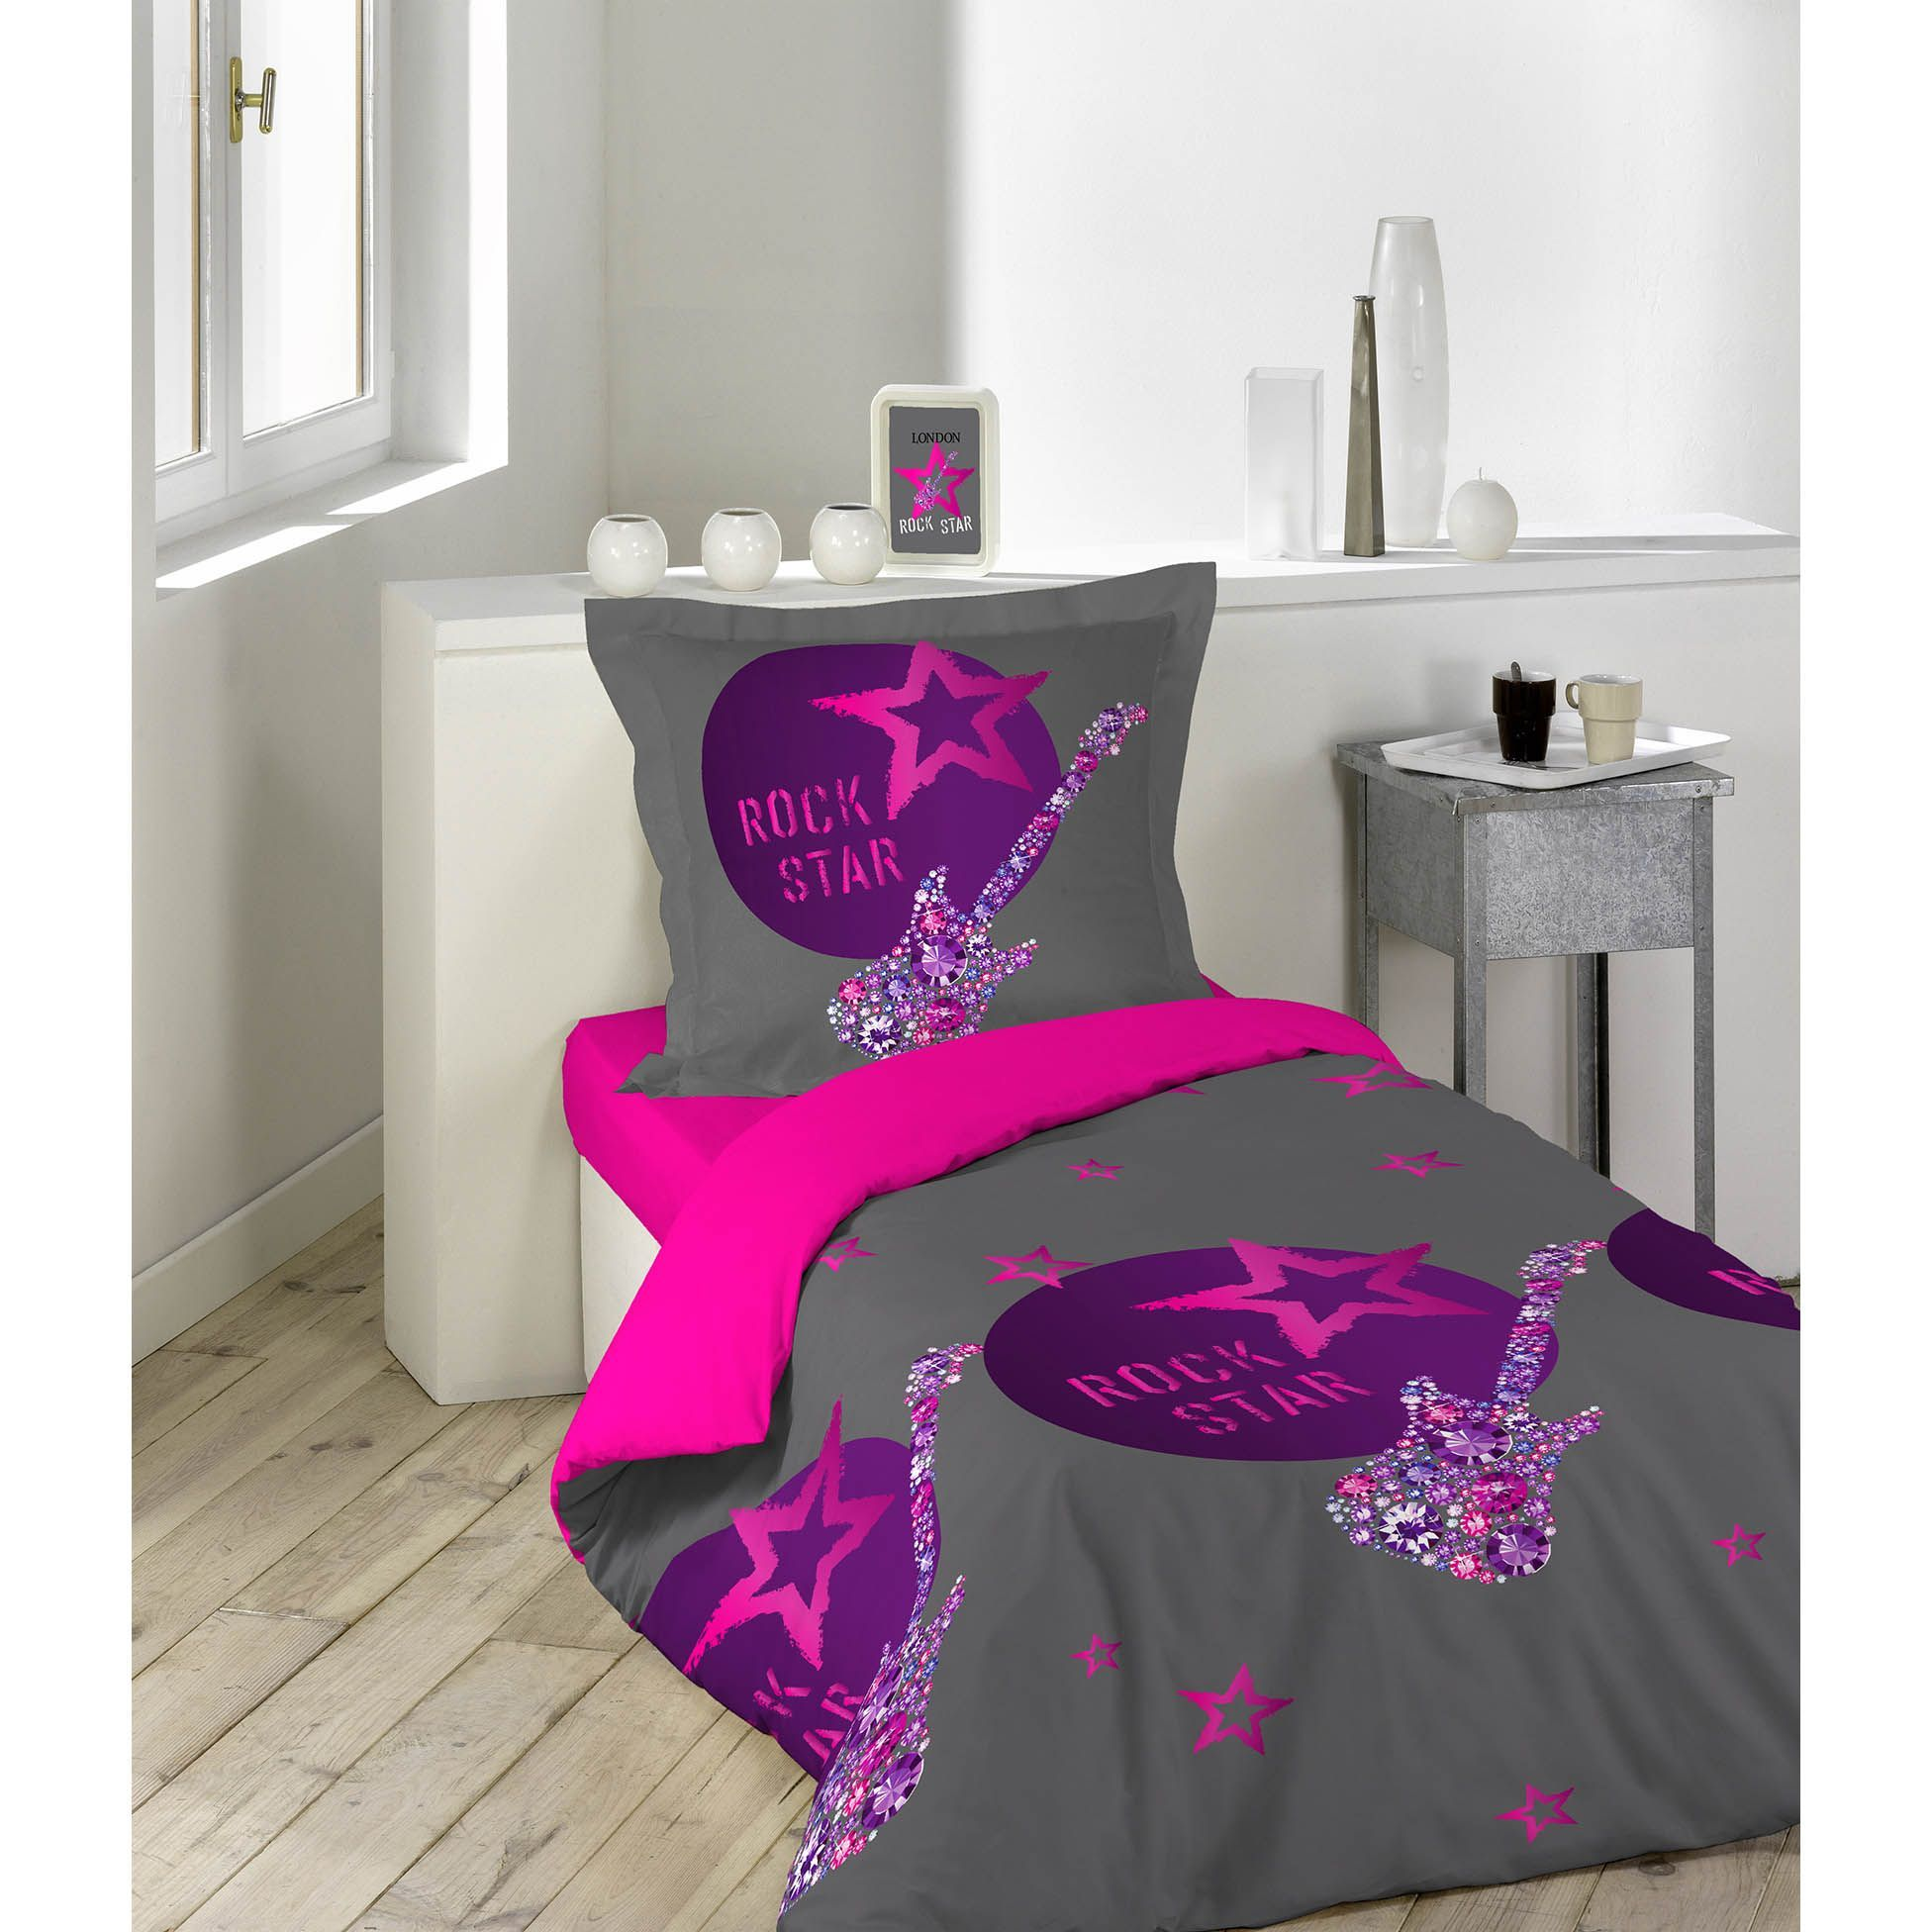 housse de couette et une taie 140 cm rock girl housse de couette eminza. Black Bedroom Furniture Sets. Home Design Ideas